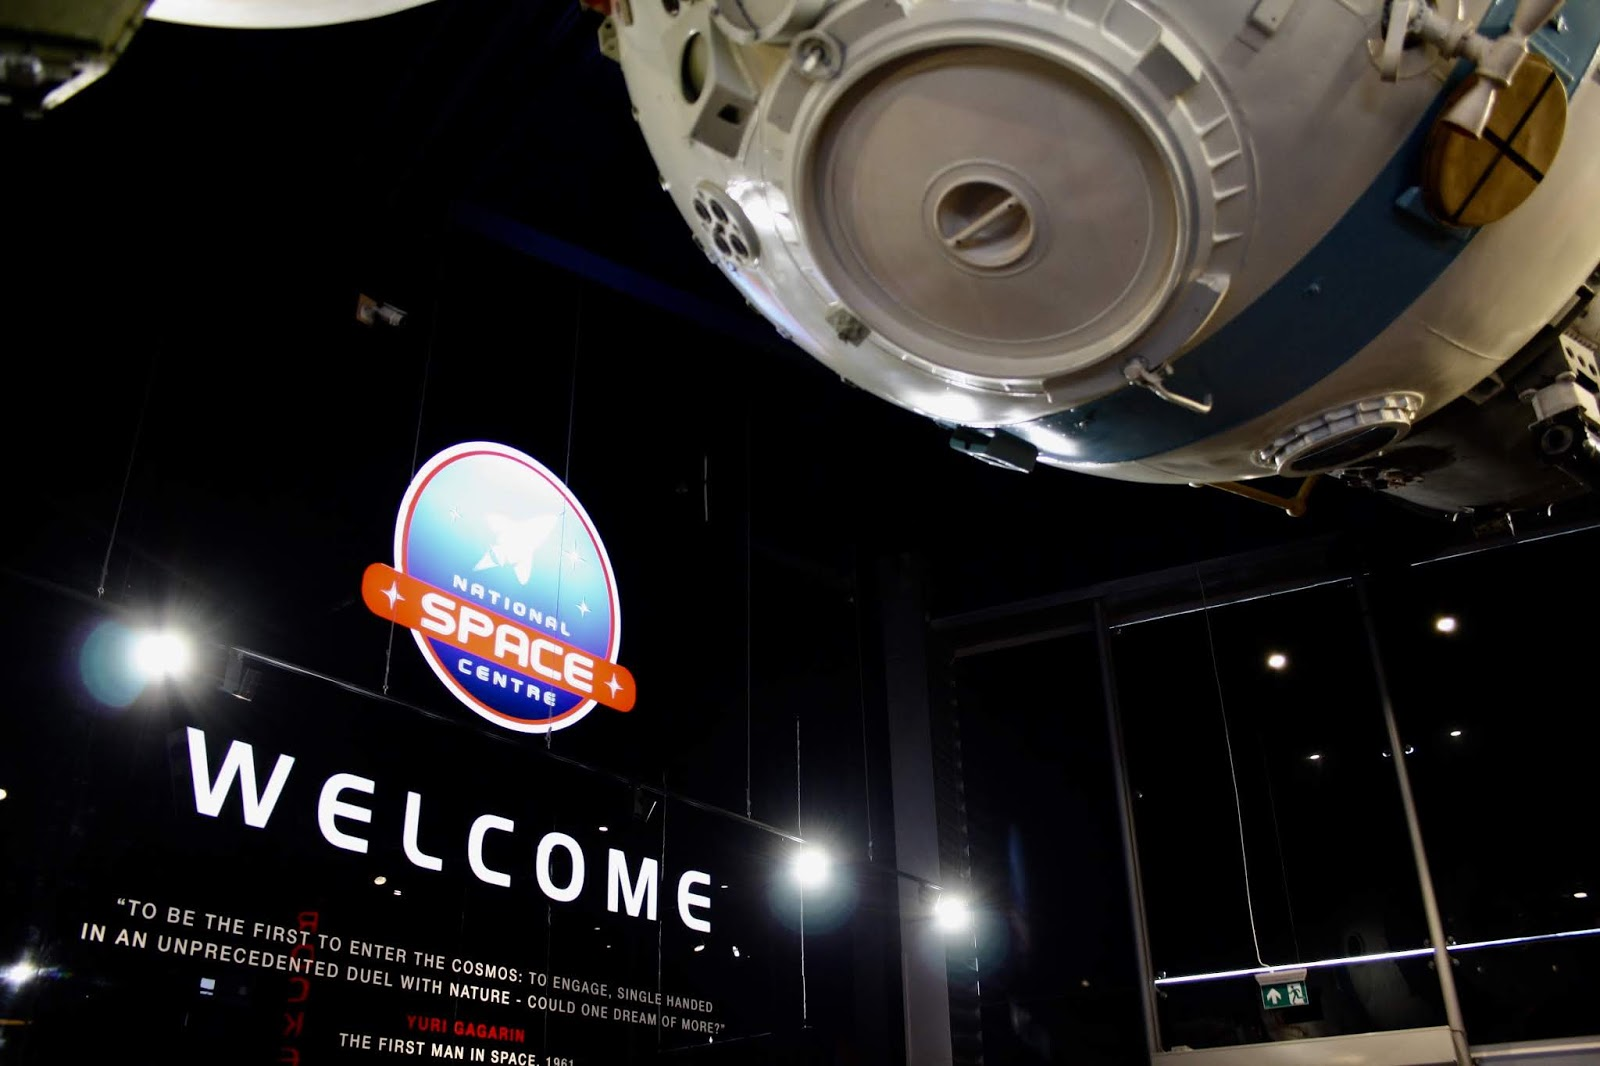 the entrance hall of the national space centre, Leicester